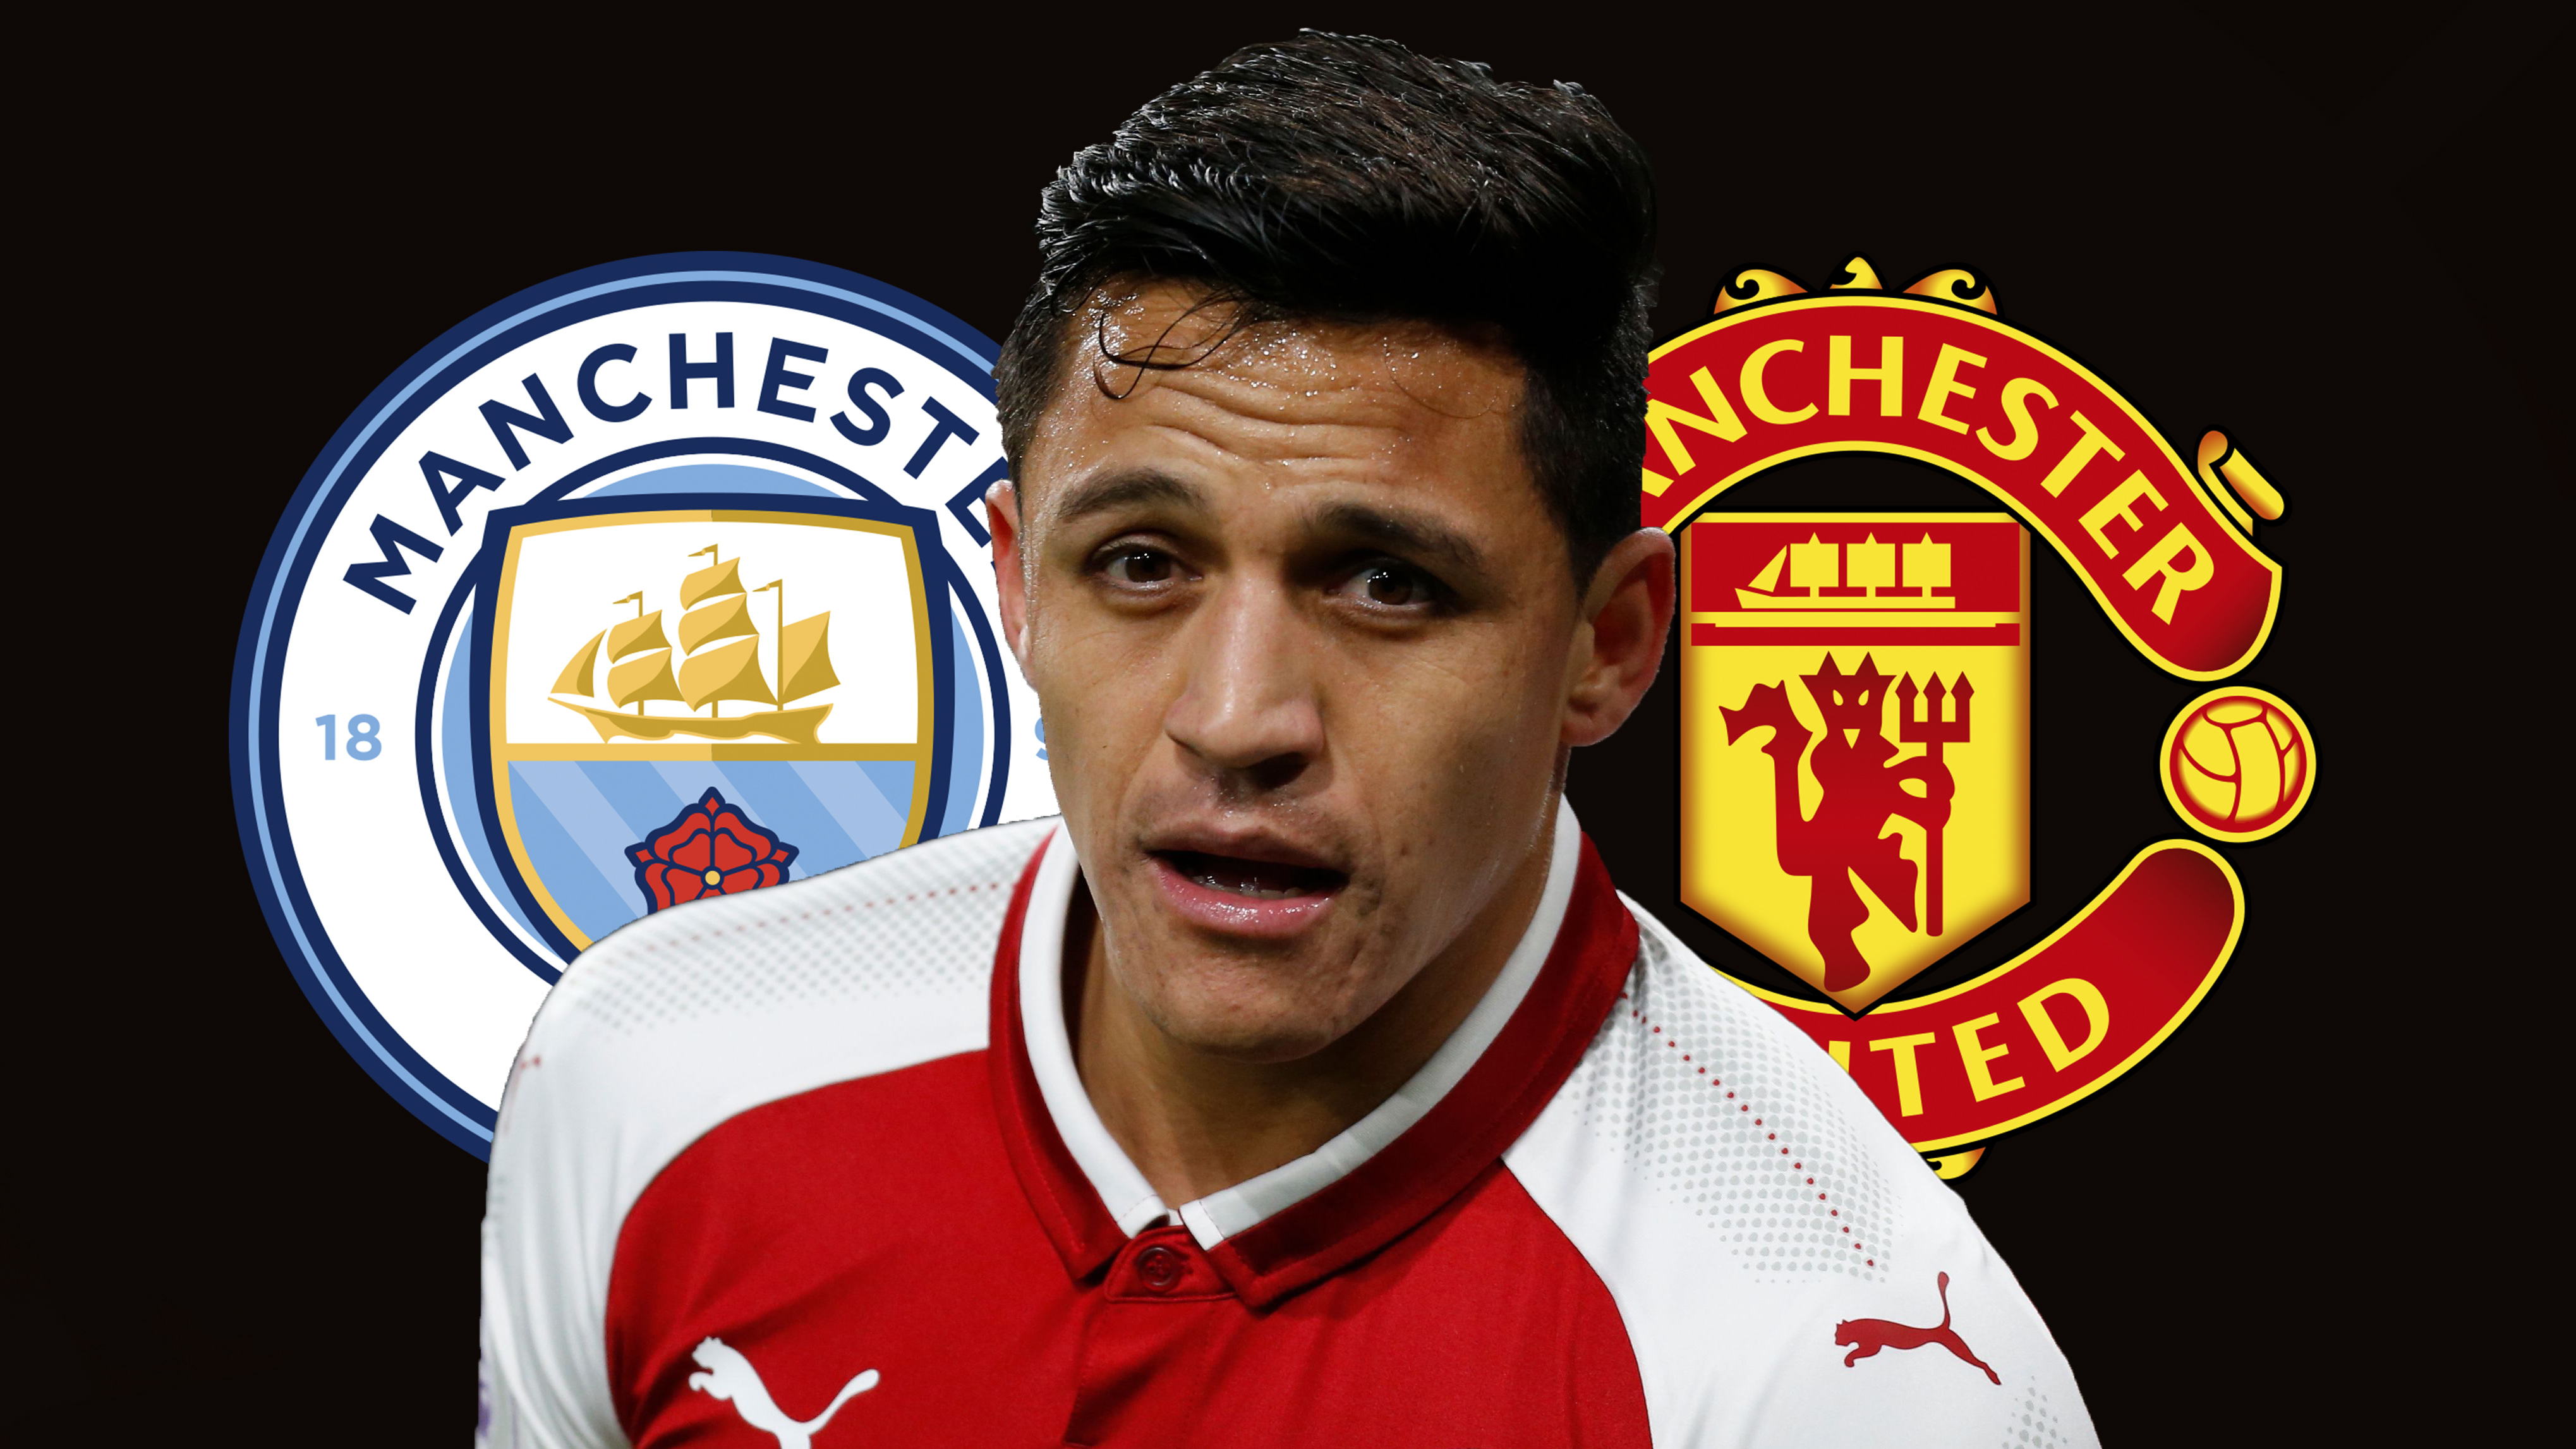 alexis sanchez transfer news manchester city pull plug as manchester united close in. Black Bedroom Furniture Sets. Home Design Ideas